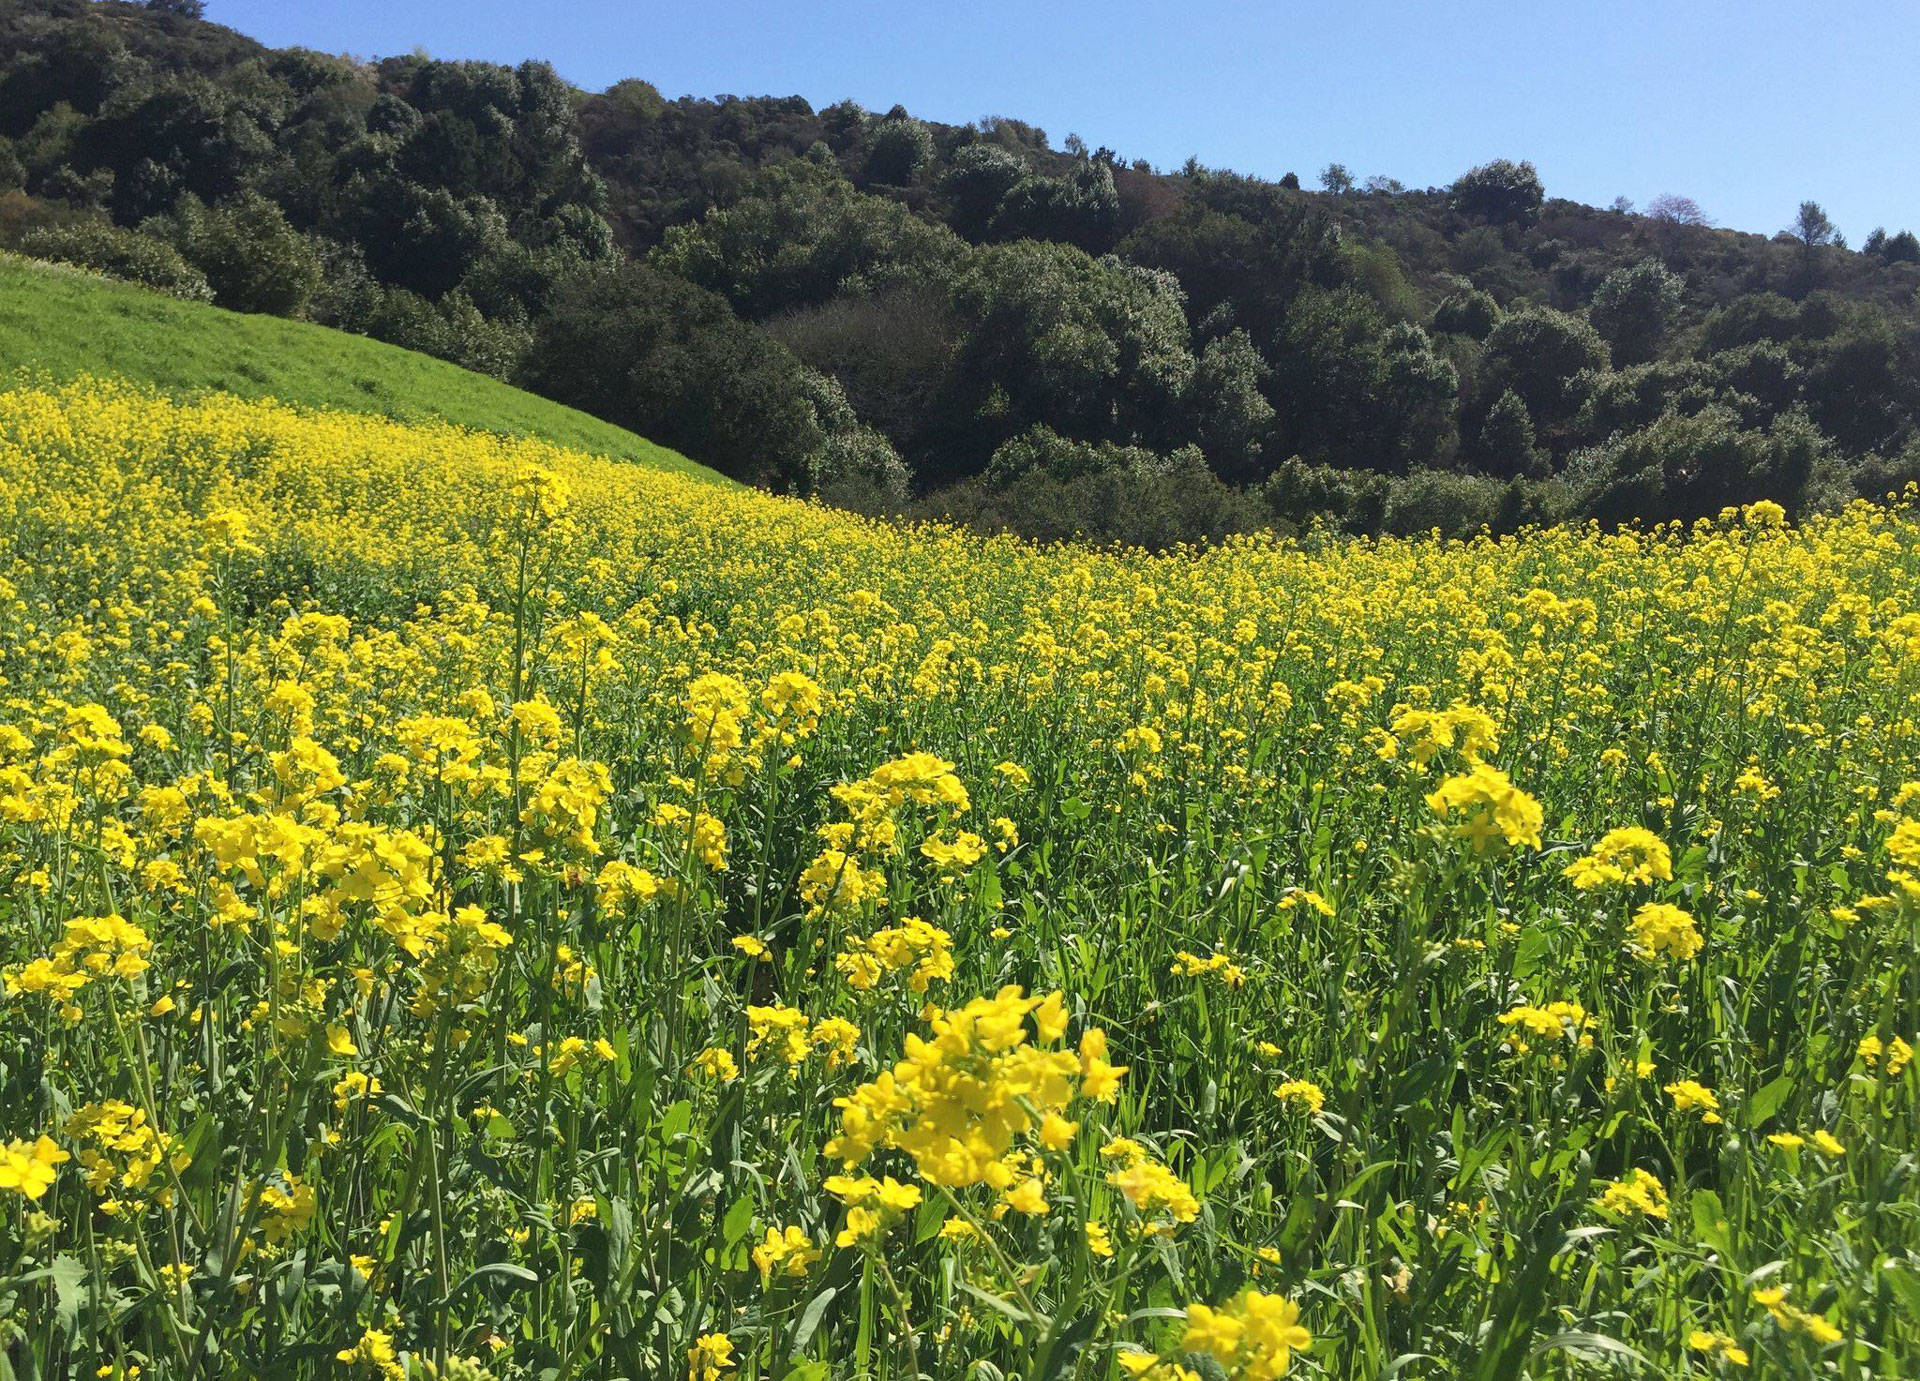 Wild mustard blanketing the Berkeley Hills.  Liam O'Donoghue via Twitter